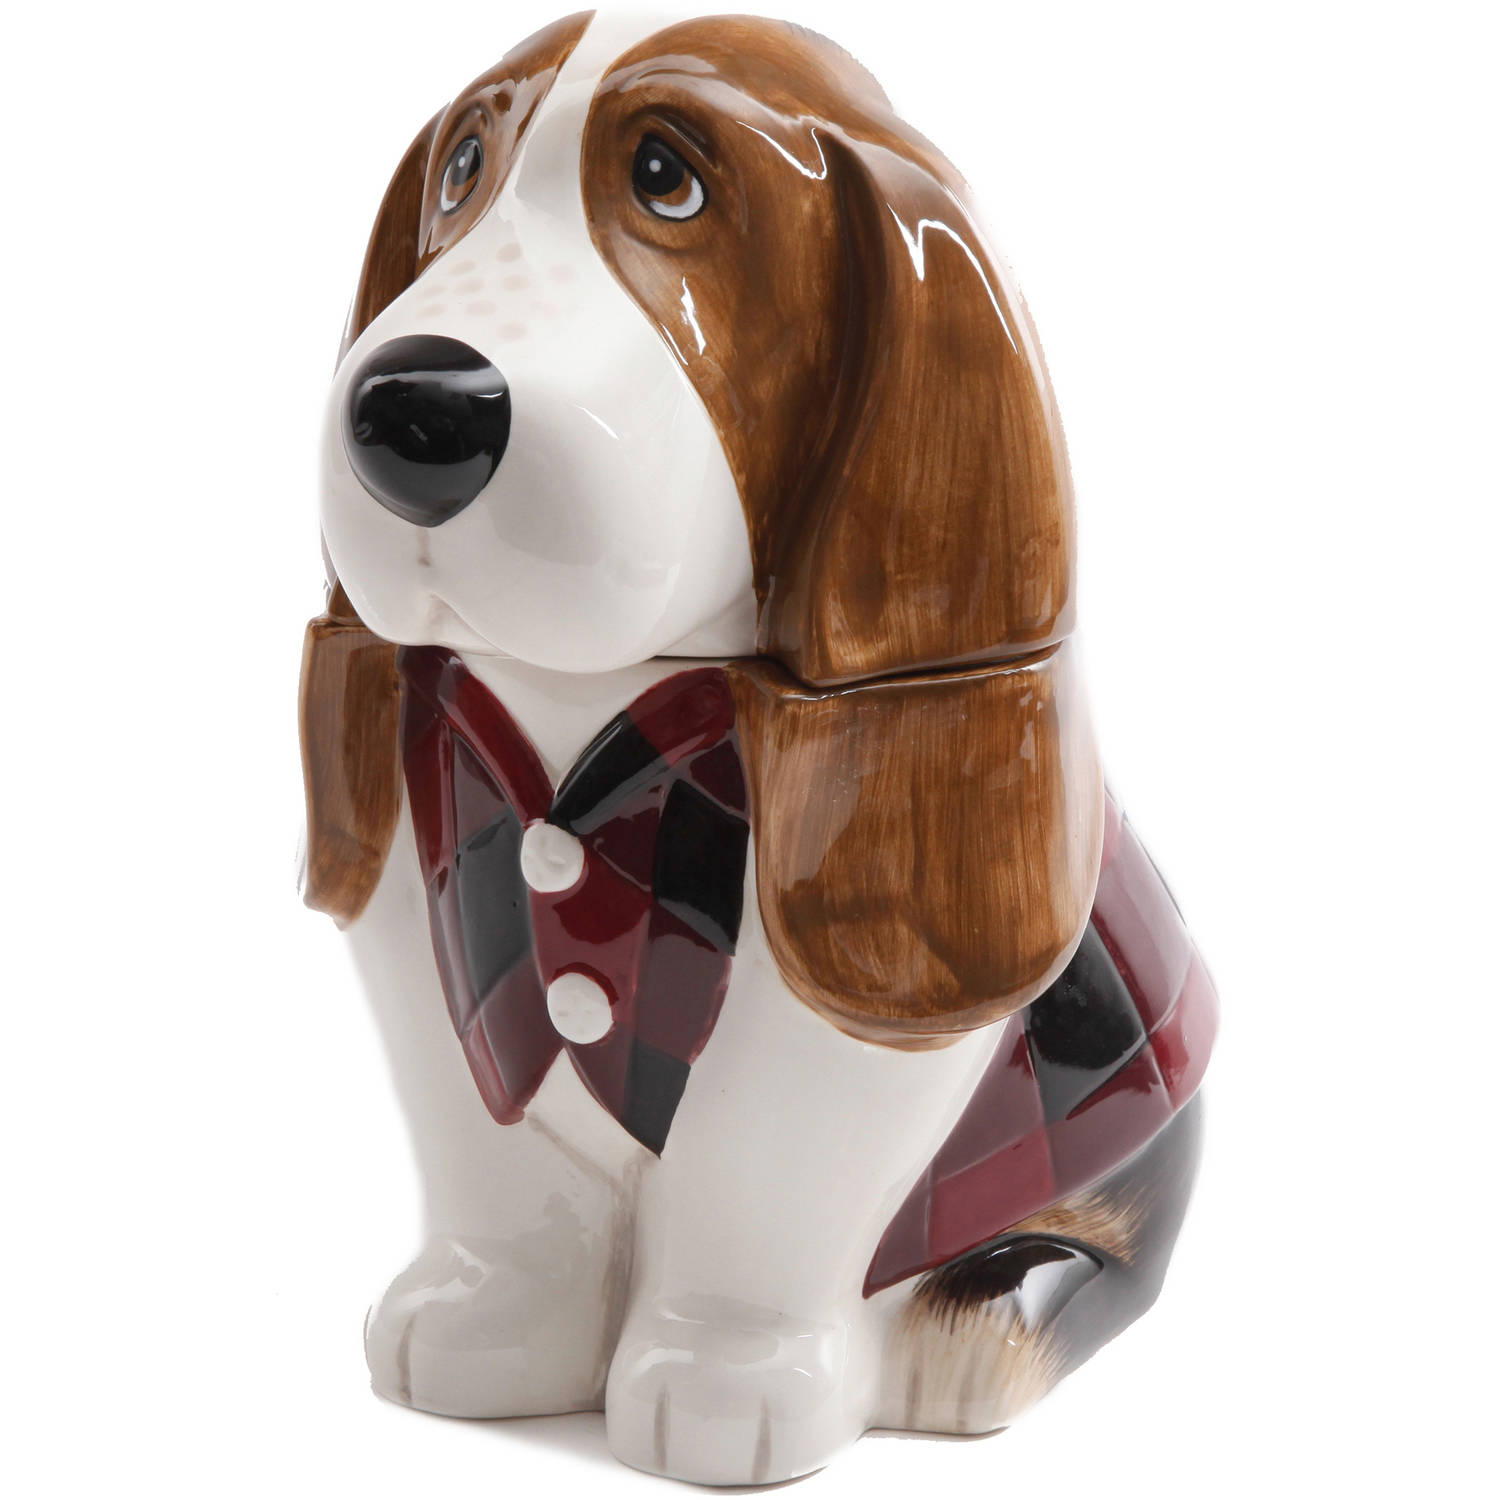 The Pioneer Woman Charlie Cookie Jar Kitchen Hound Holiday